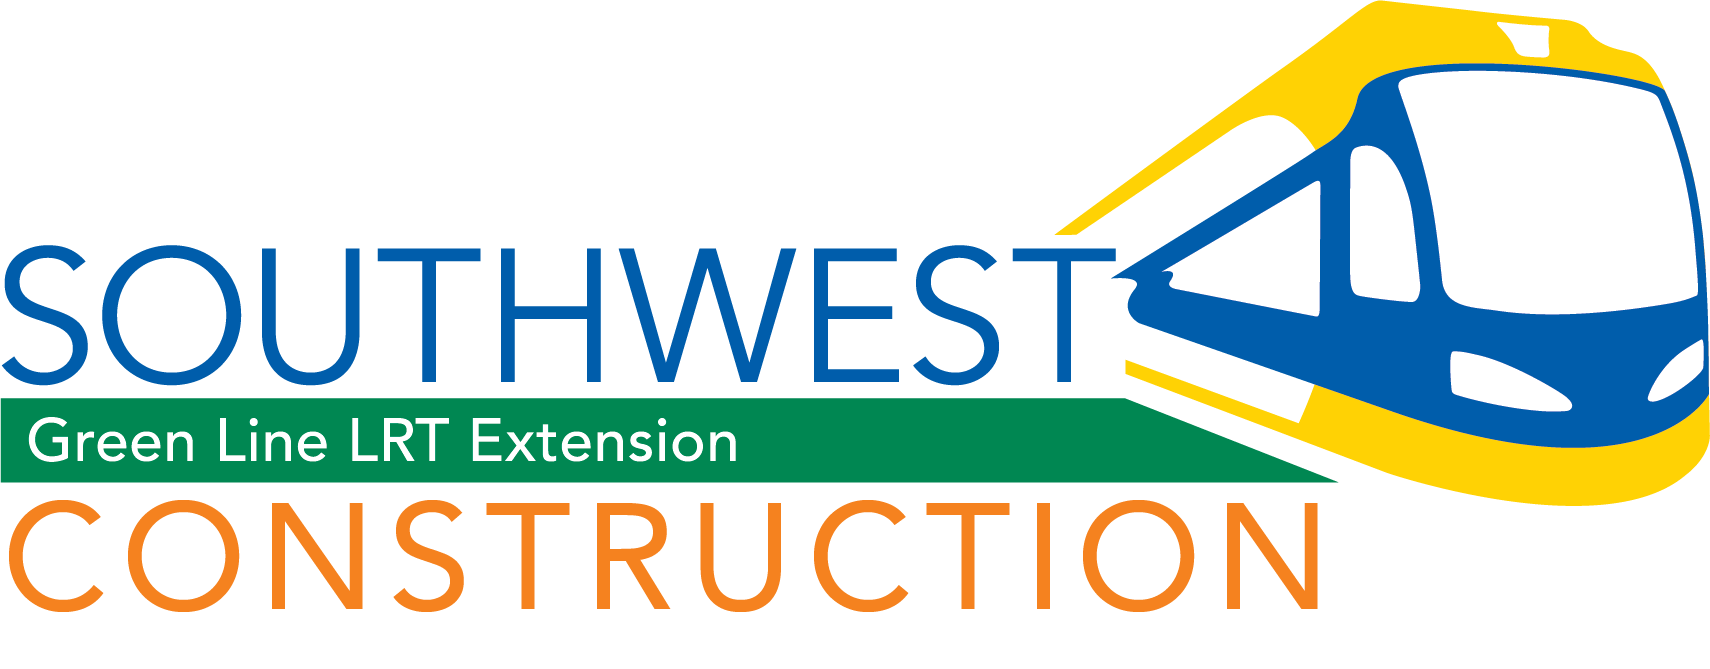 SWLRT LOGO construction